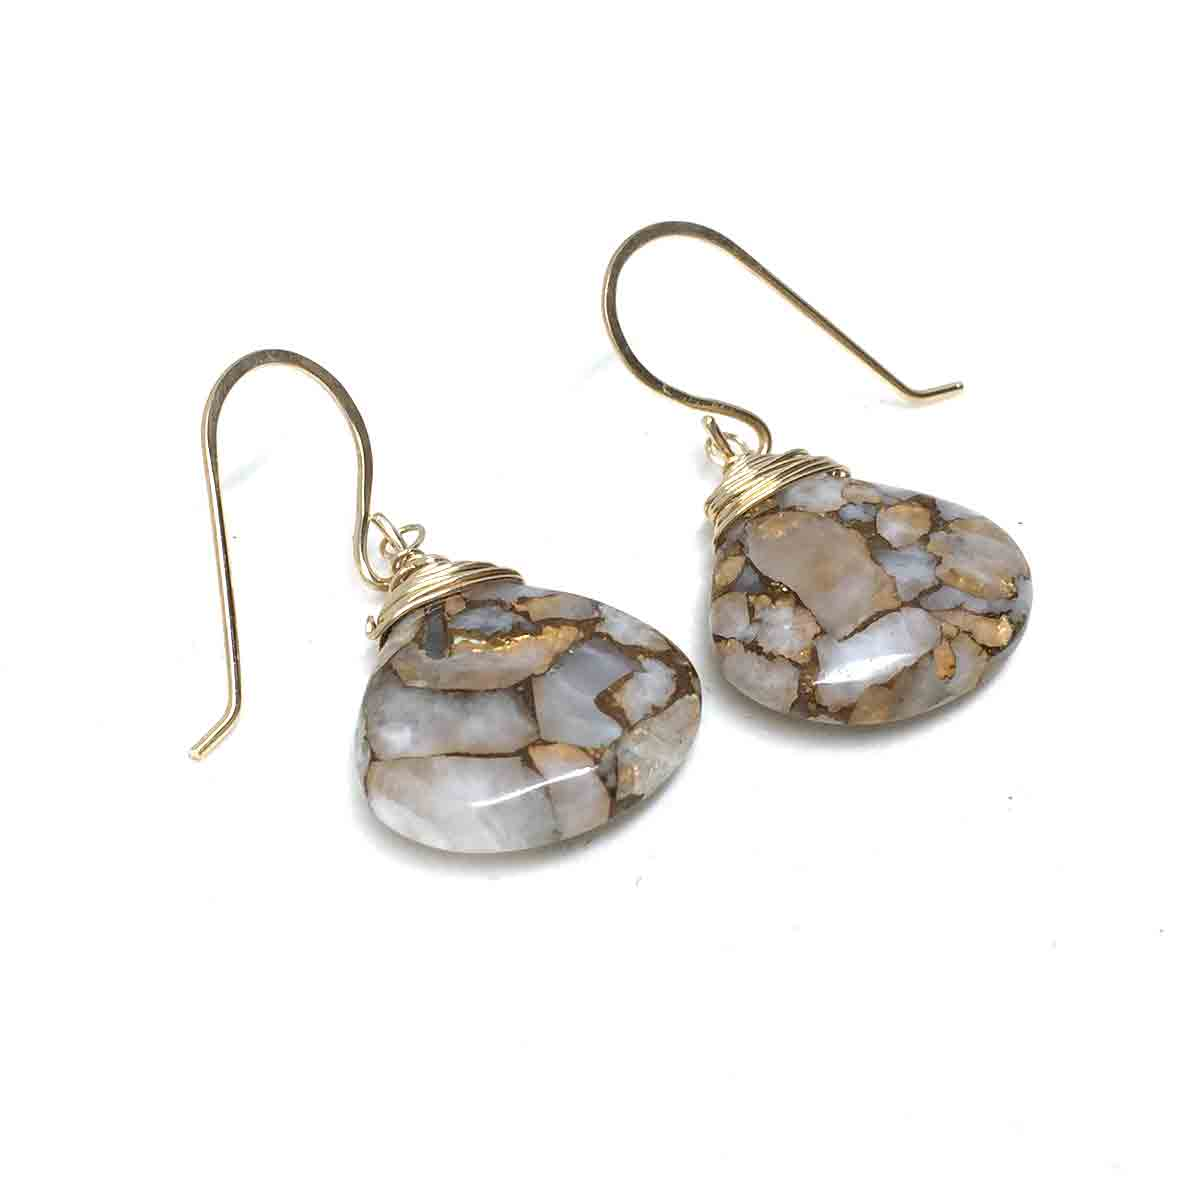 GOLD FILLED COPPER CALCITE EARRINGS - I LEARN TALISMAN